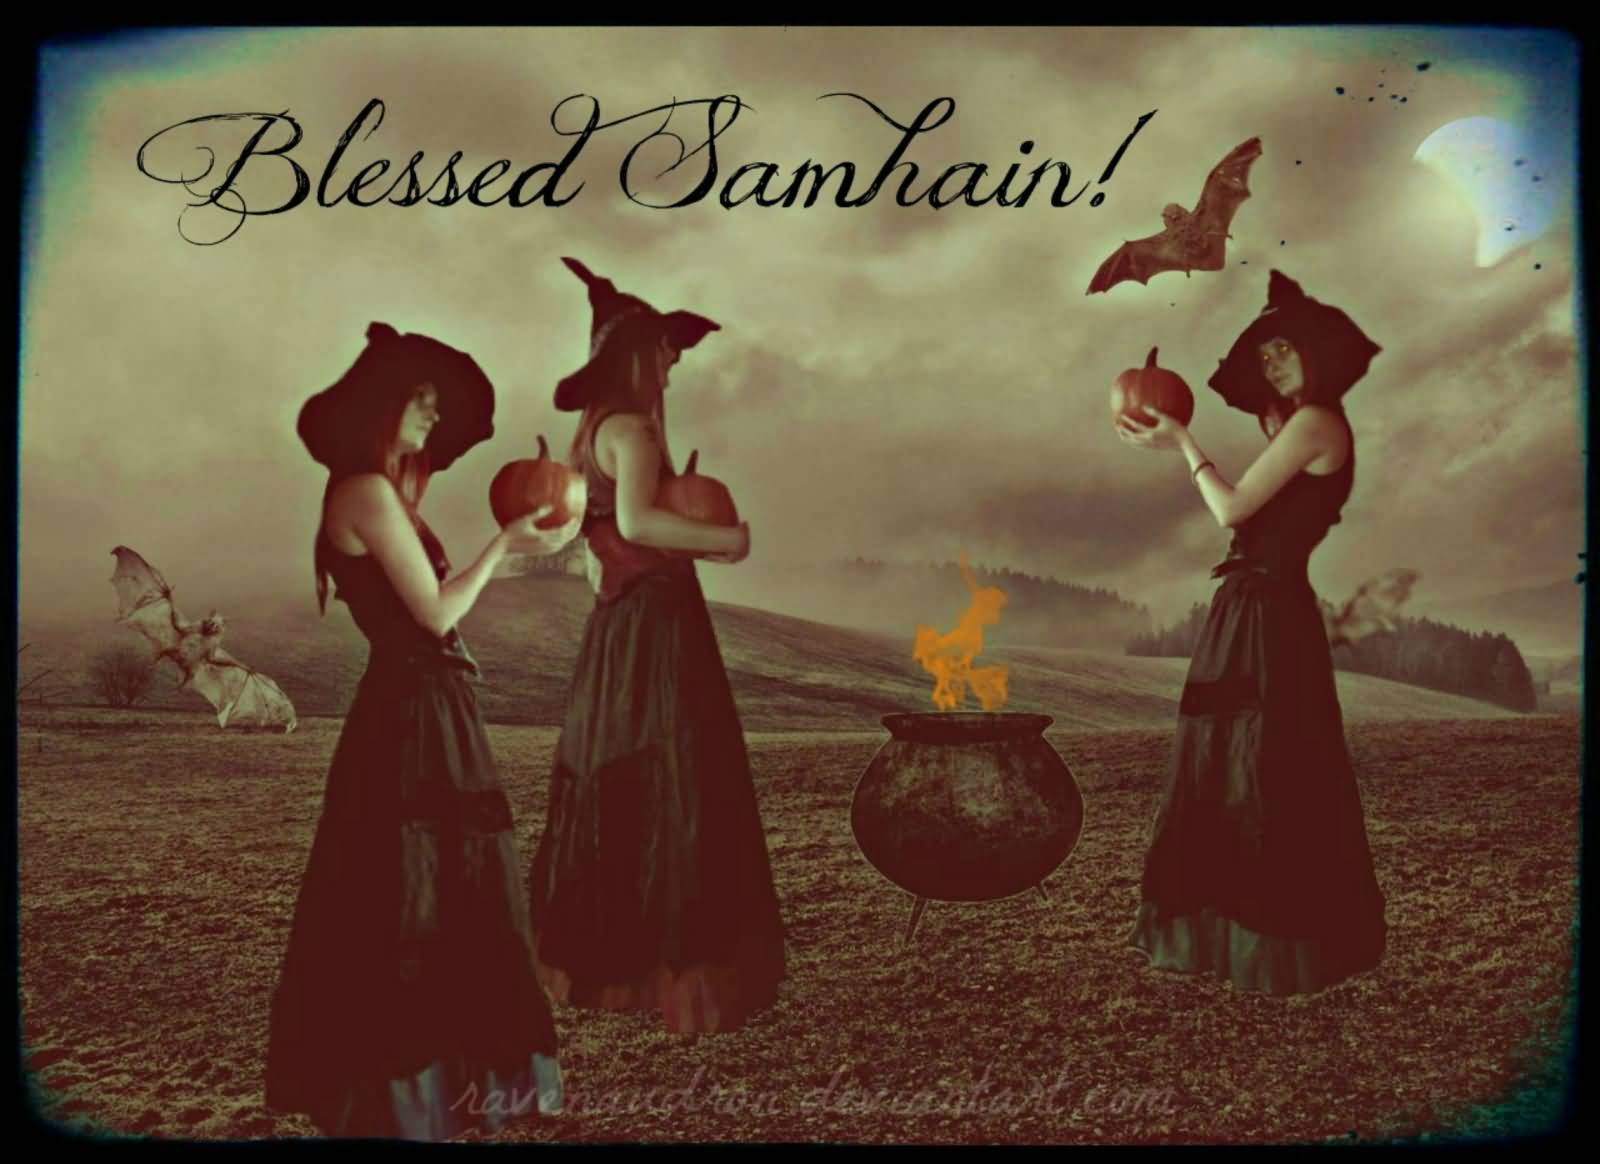 36 latest wishes pictures and photos of samhain 2016 blessed samhain witches picture m4hsunfo